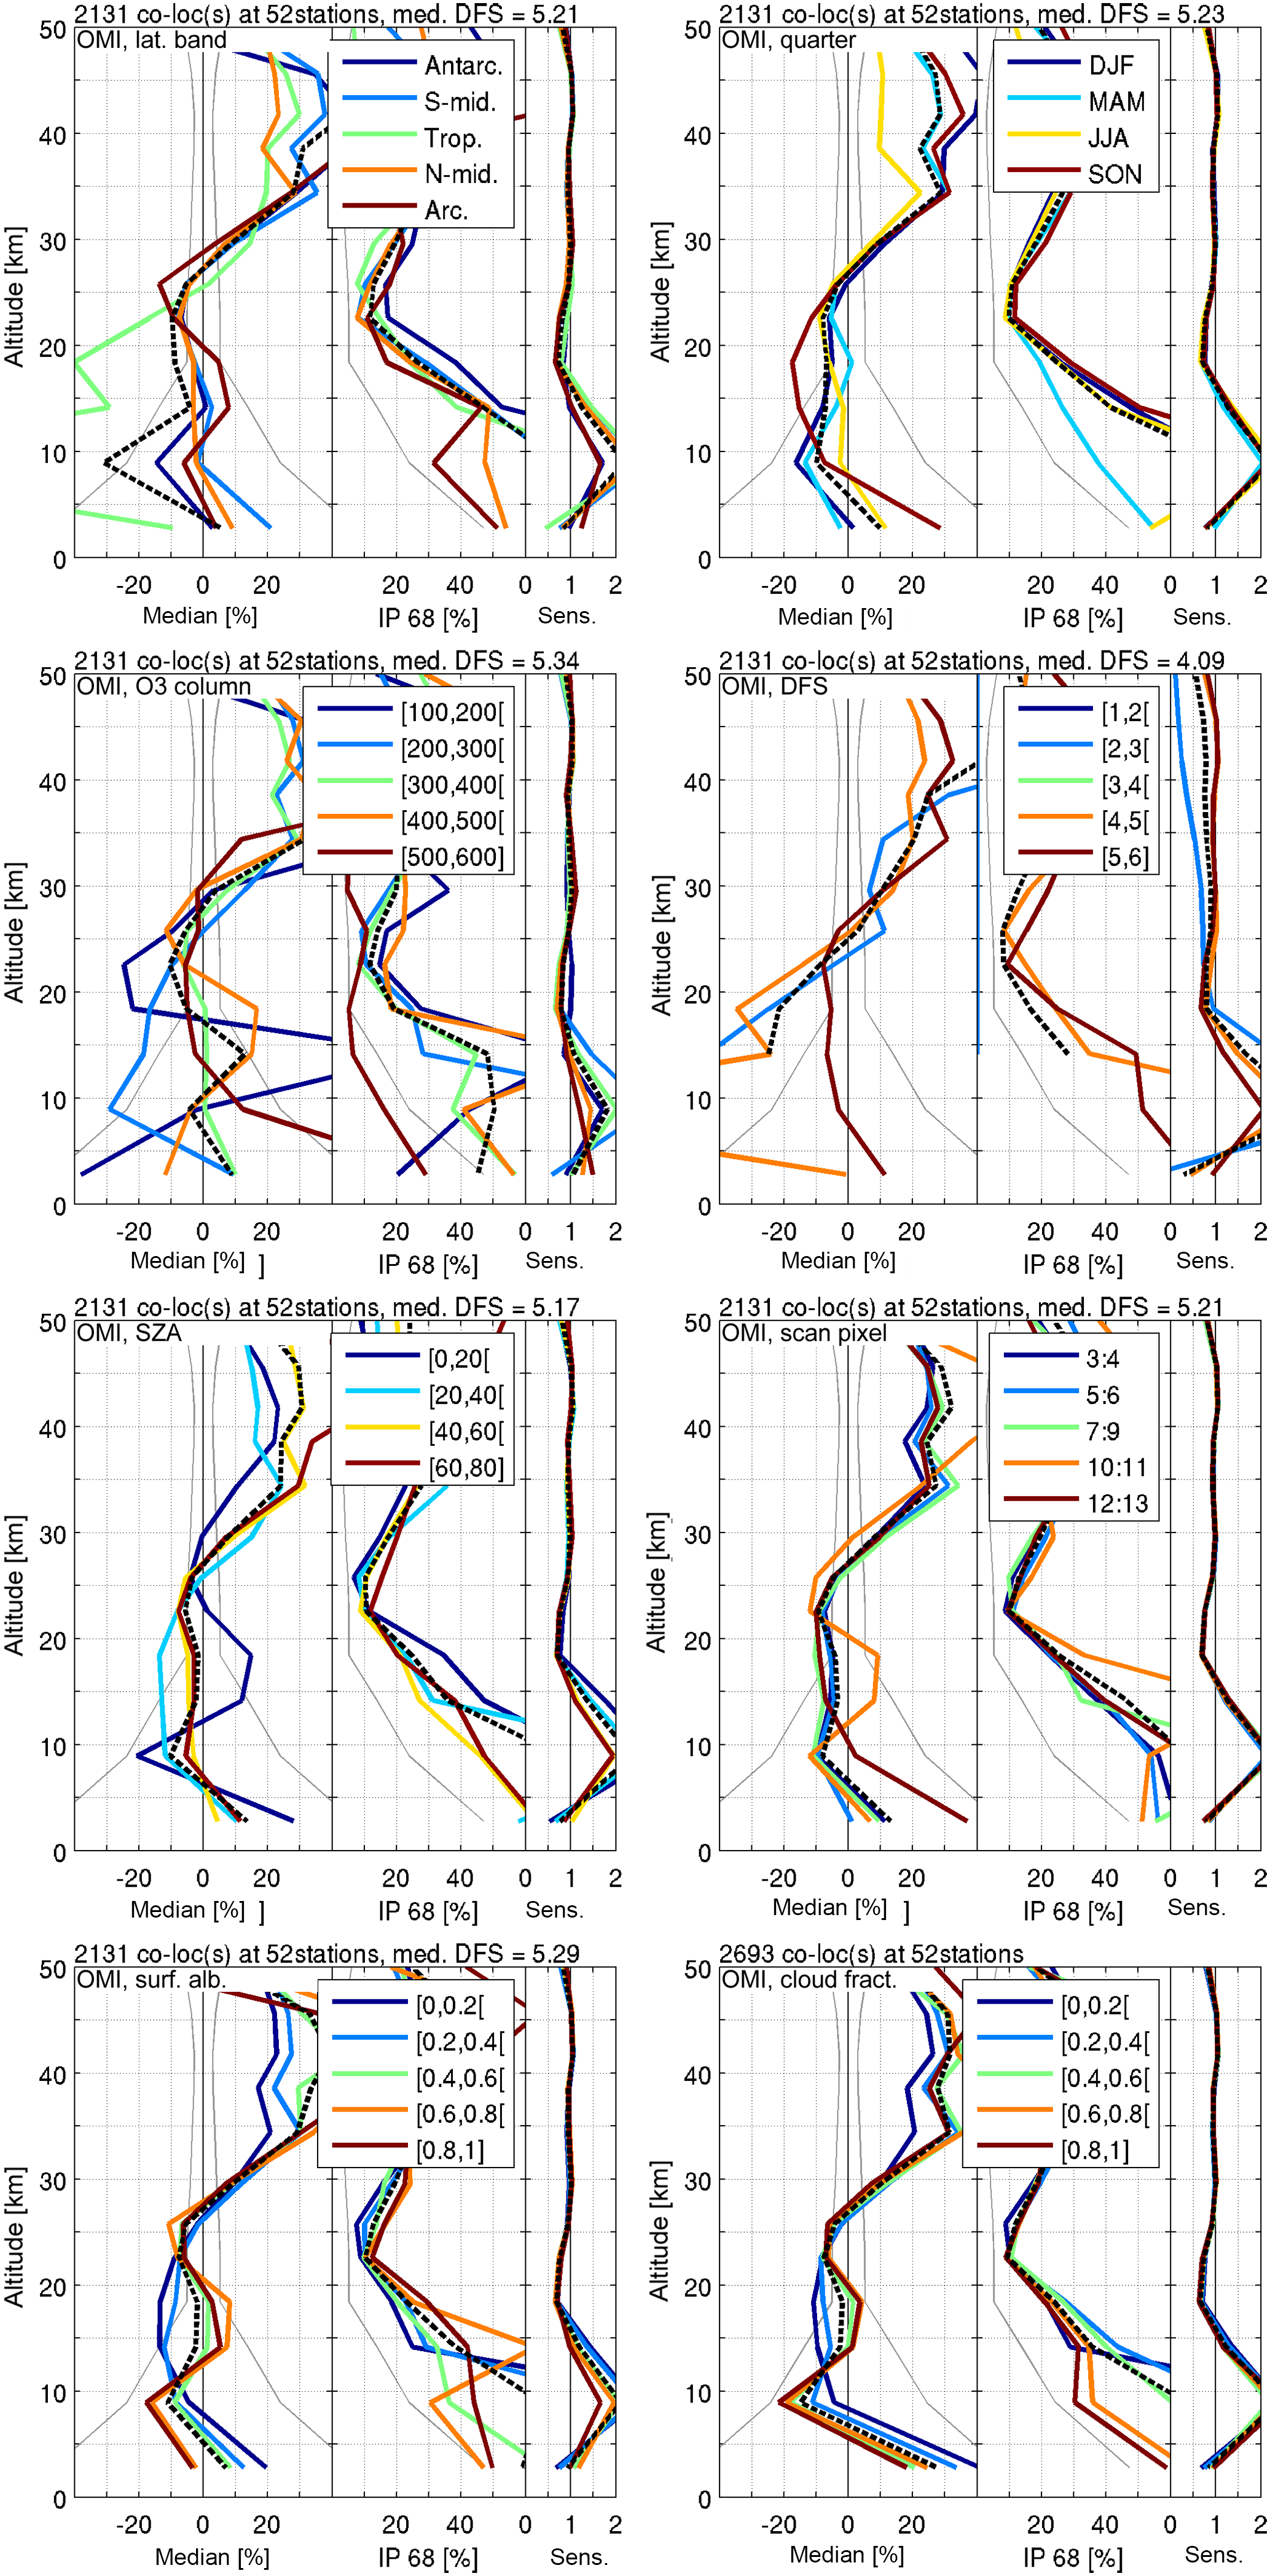 AMT - Quality assessment of the Ozone_cci Climate Research